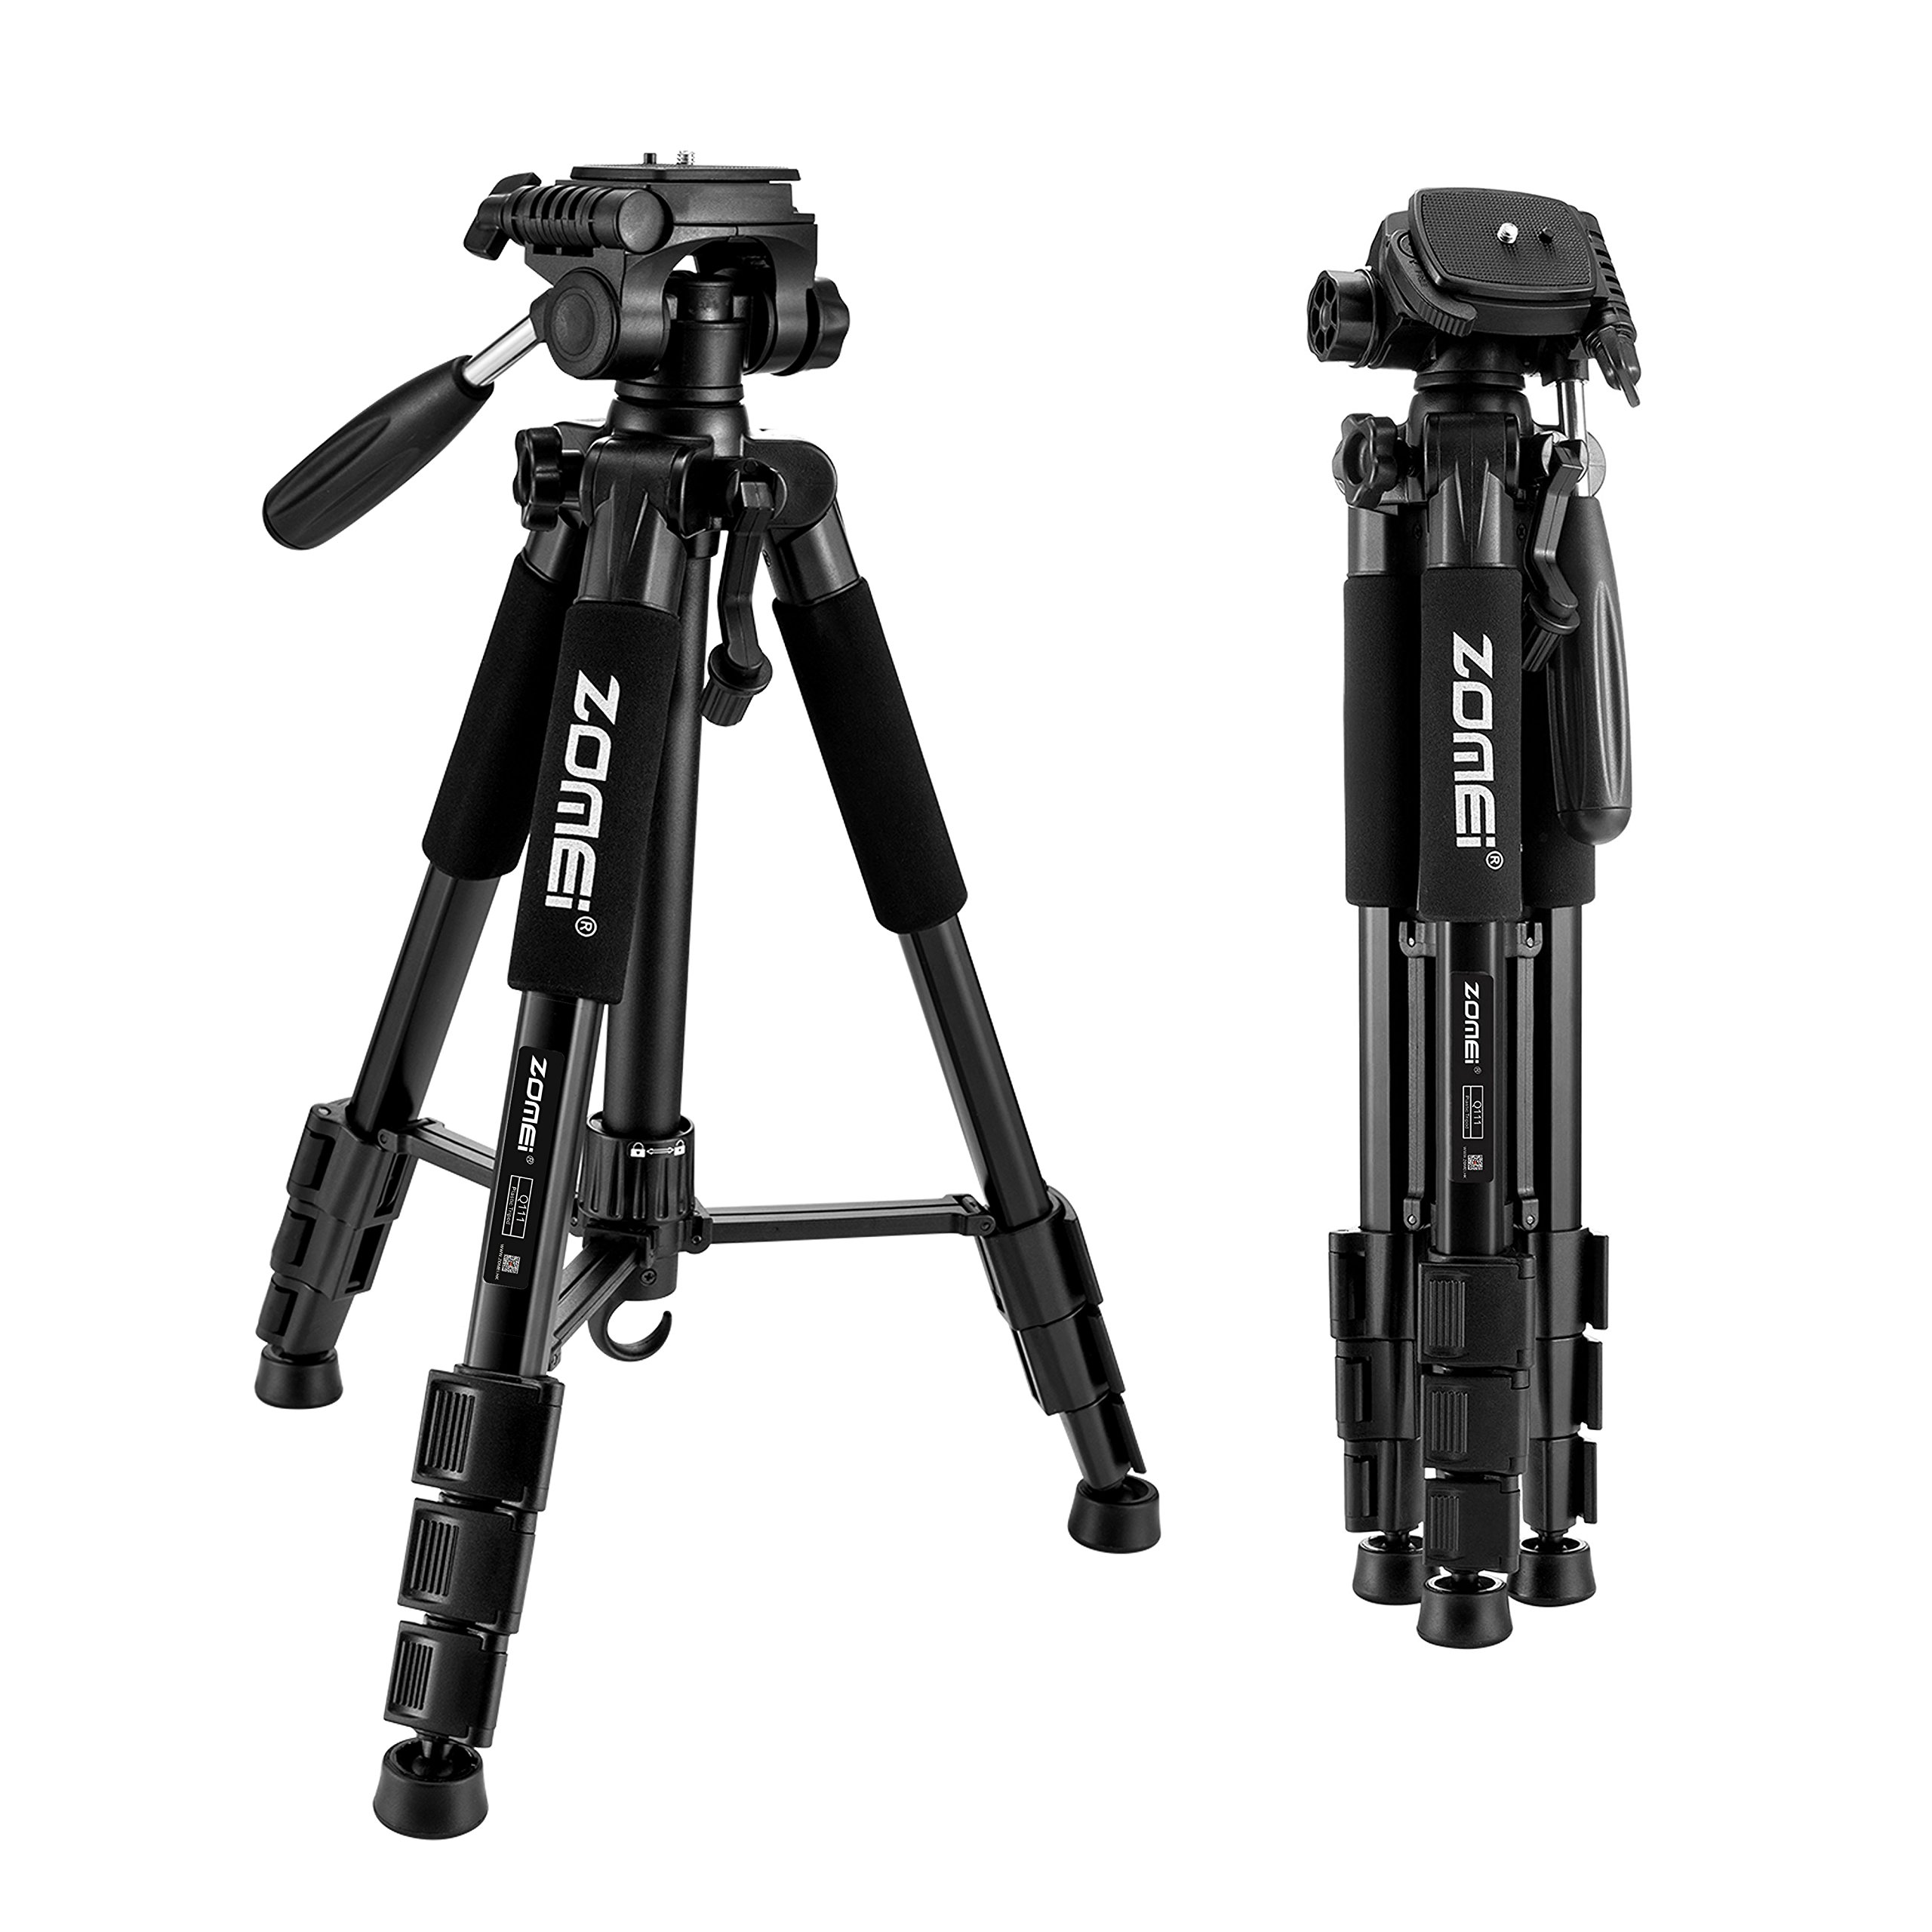 ZOMEI Compact Light Weight Travel Portable Aluminum Camera Tripod for Canon Nikon Sony DSLR Camera with Carry Case(black) by ZOMEi